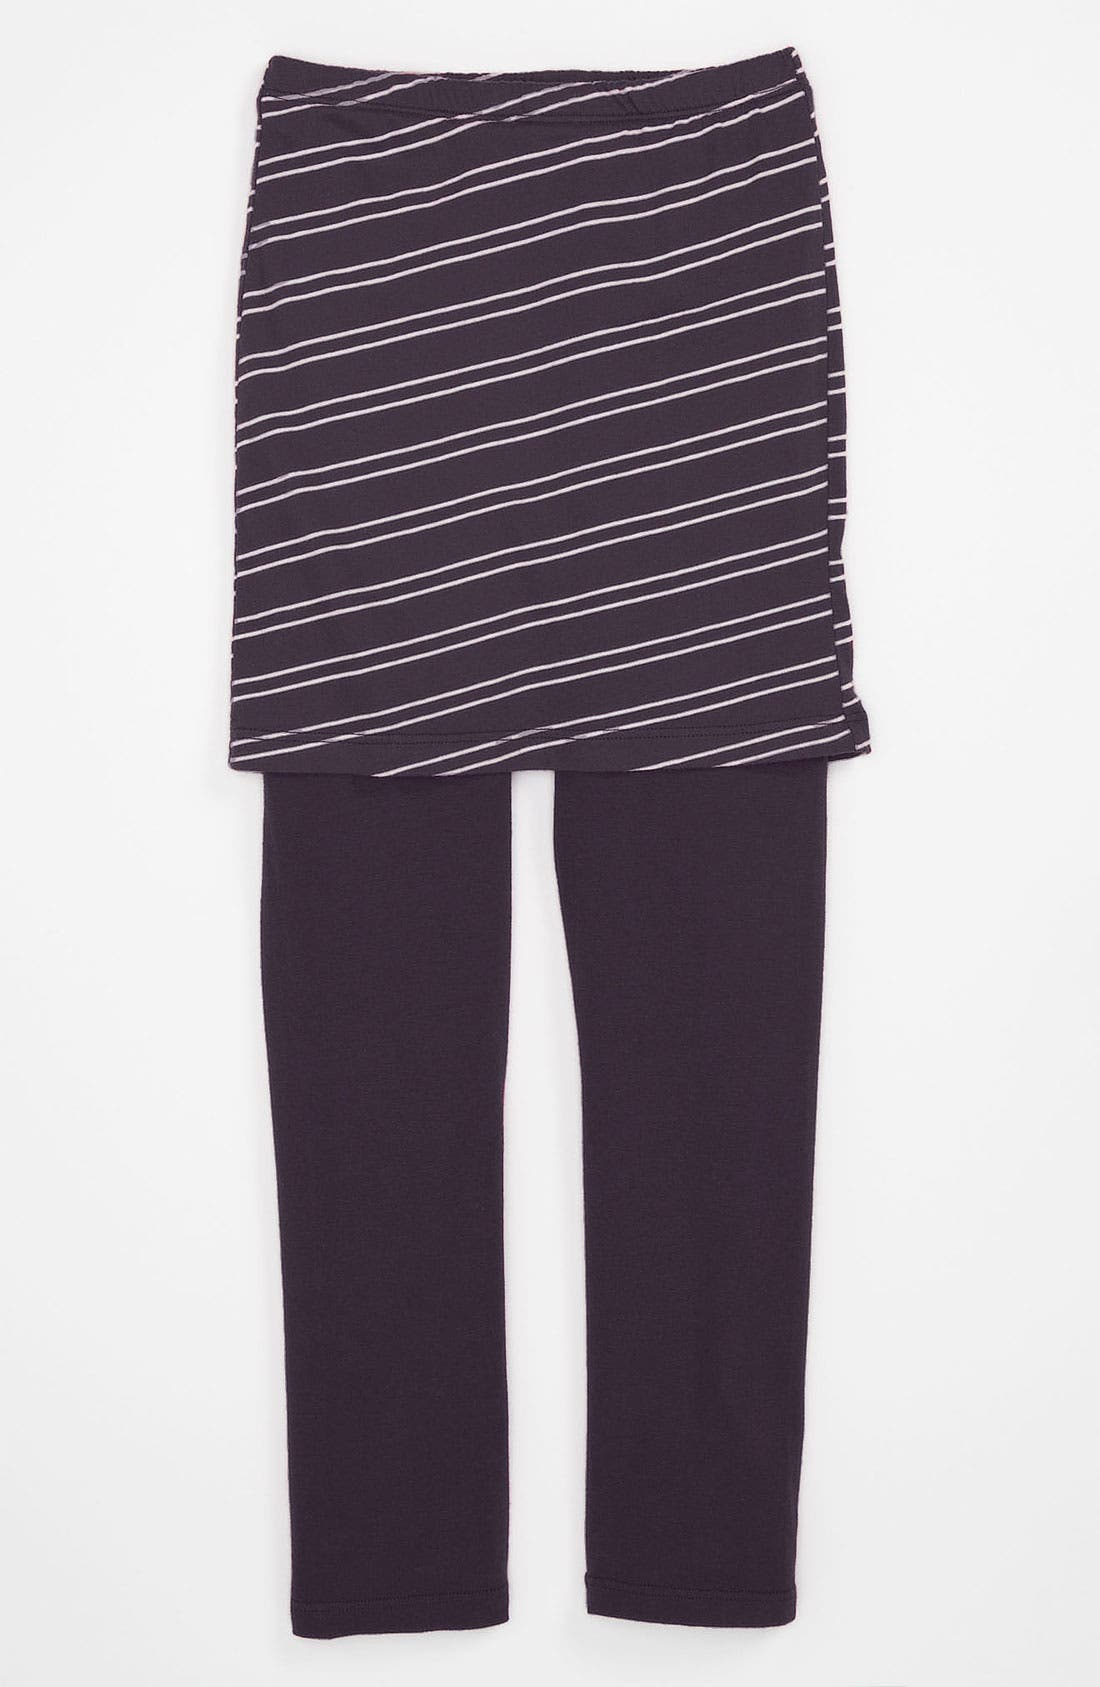 Alternate Image 1 Selected - Joah Love Stripe Skirt Leggings (Little Girls & Big Girls)